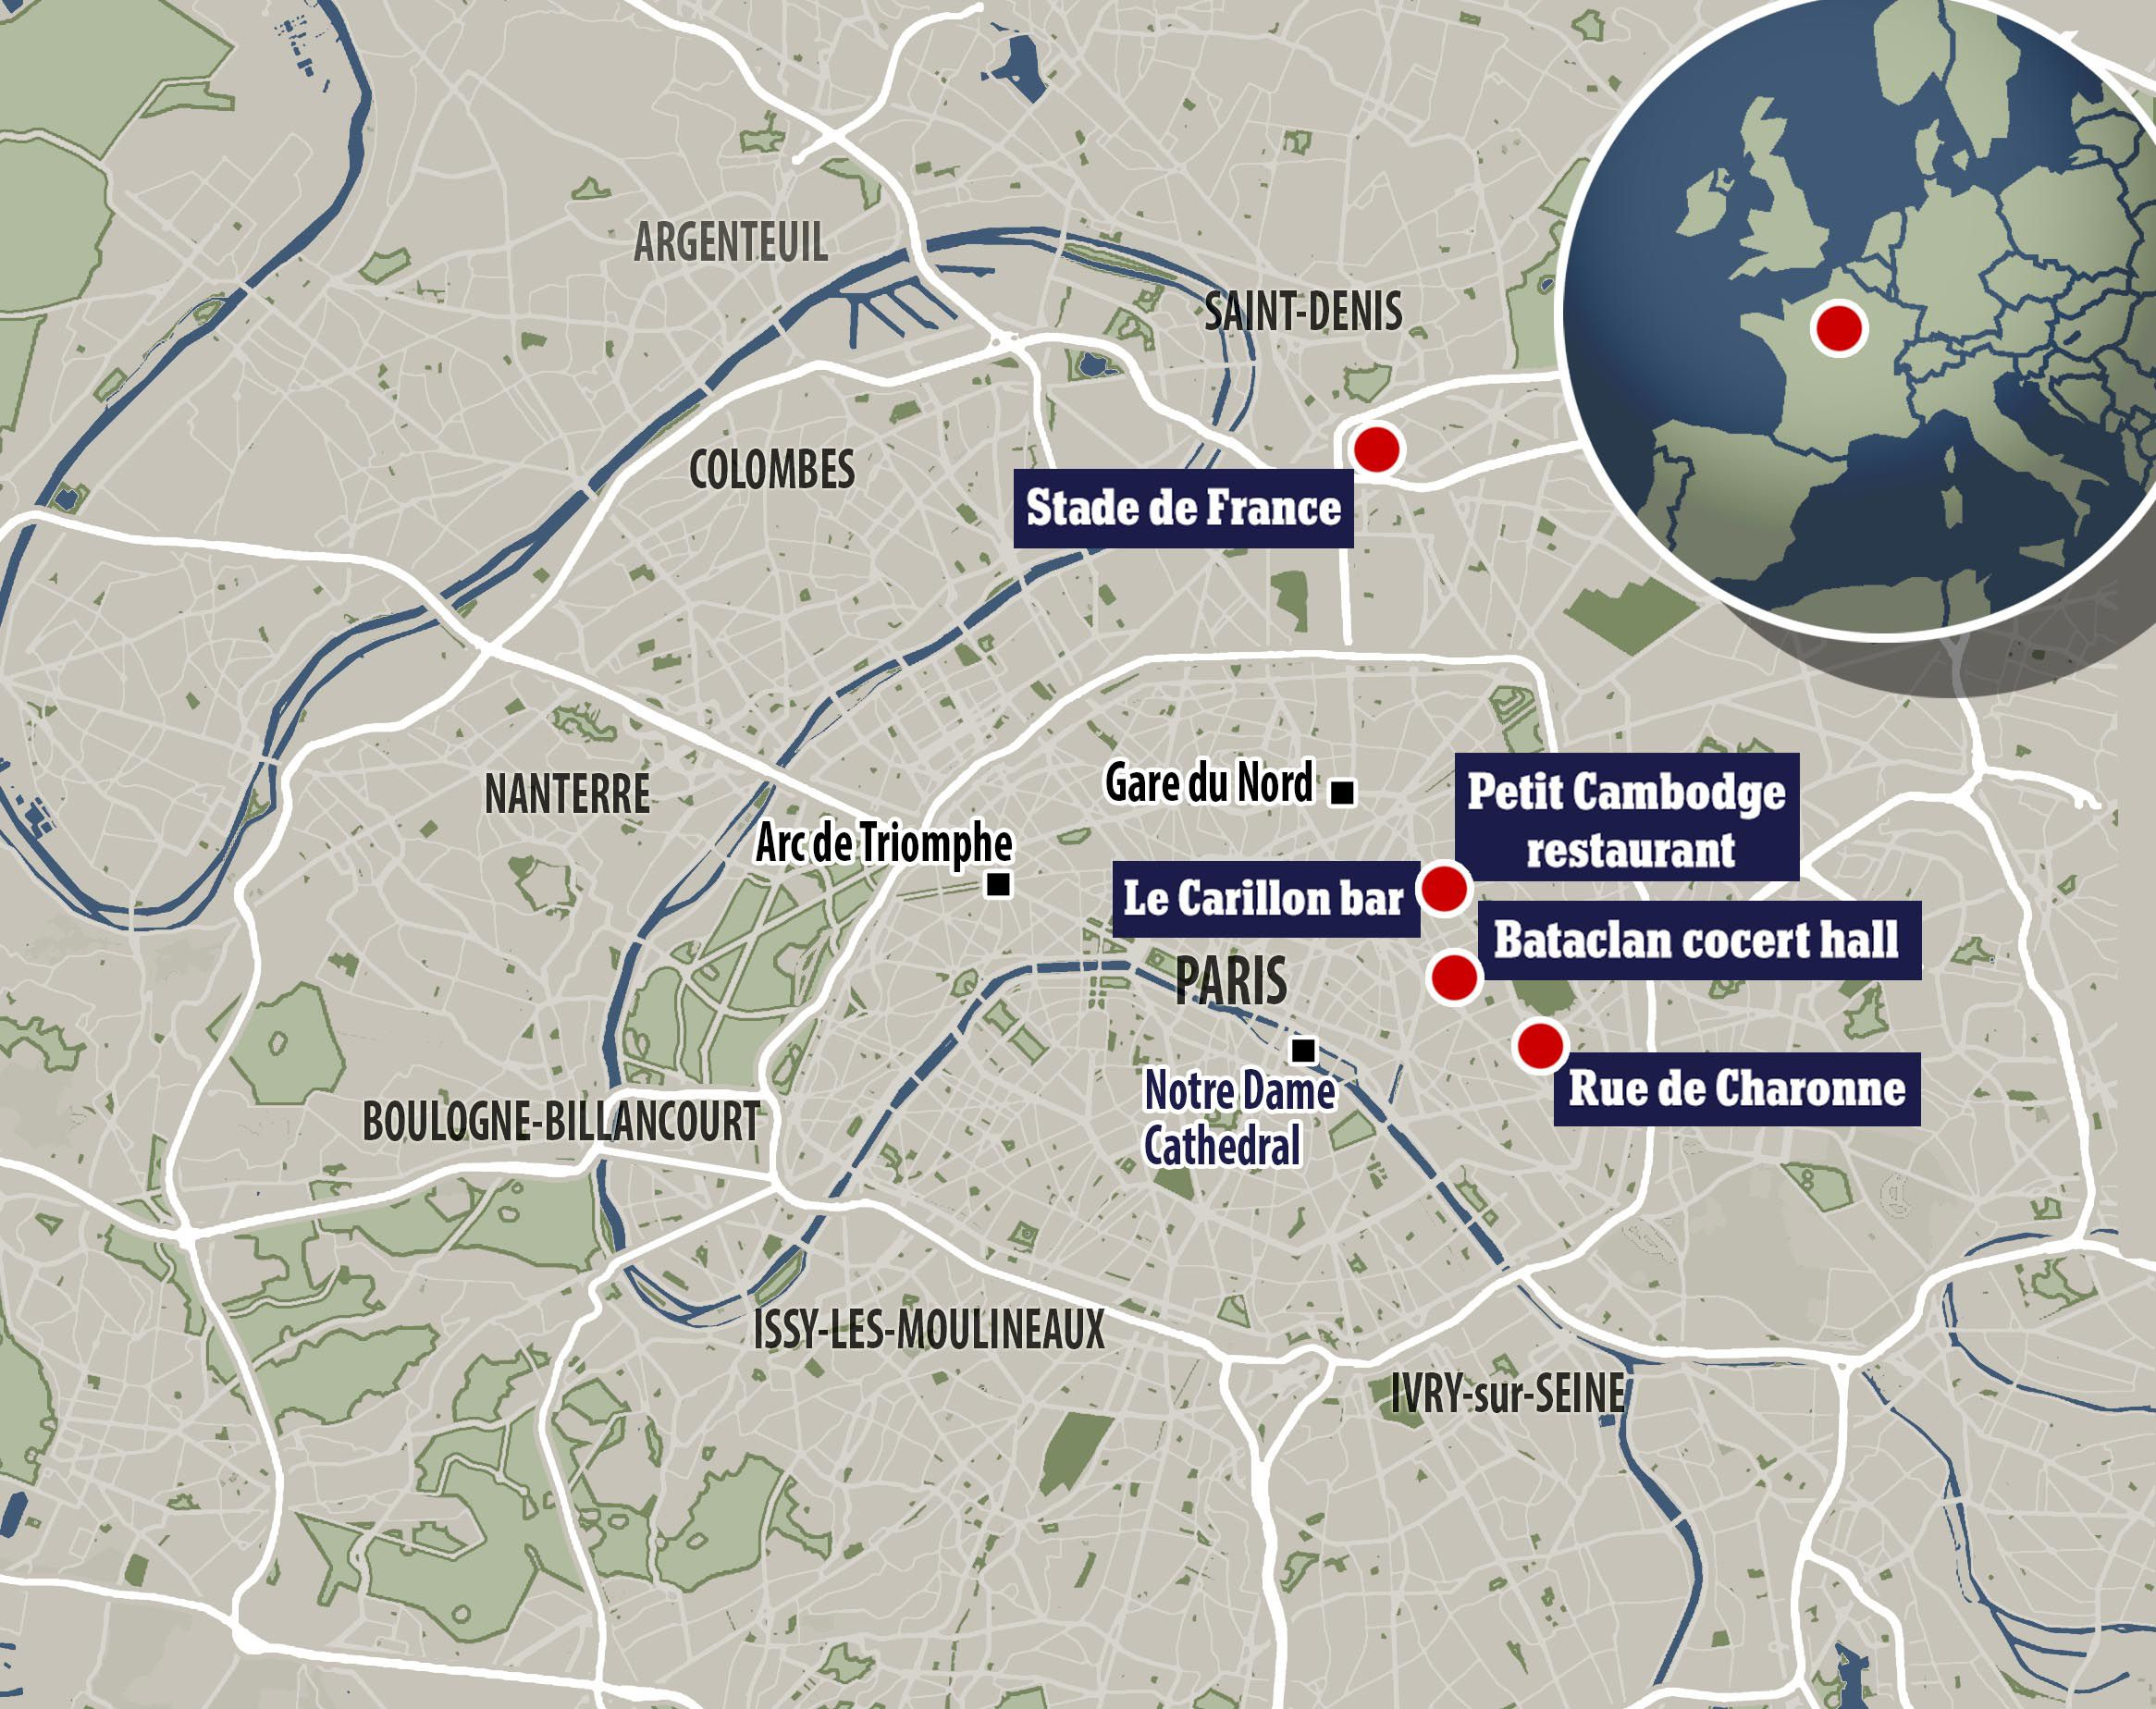 Citizen Journalism Coverage On The Paris Attacks - Paris map 2016